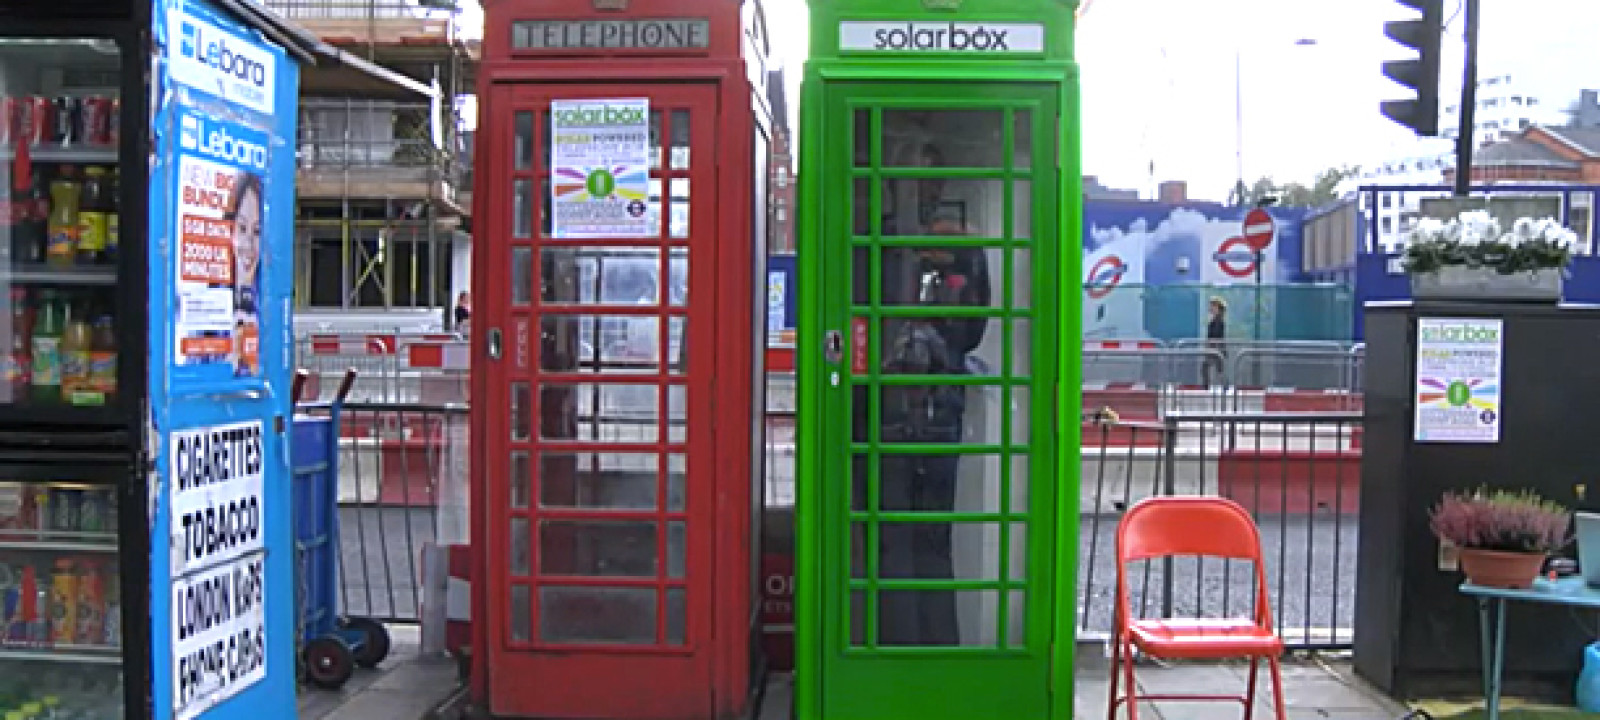 A normal red phone box and a solarbox, London